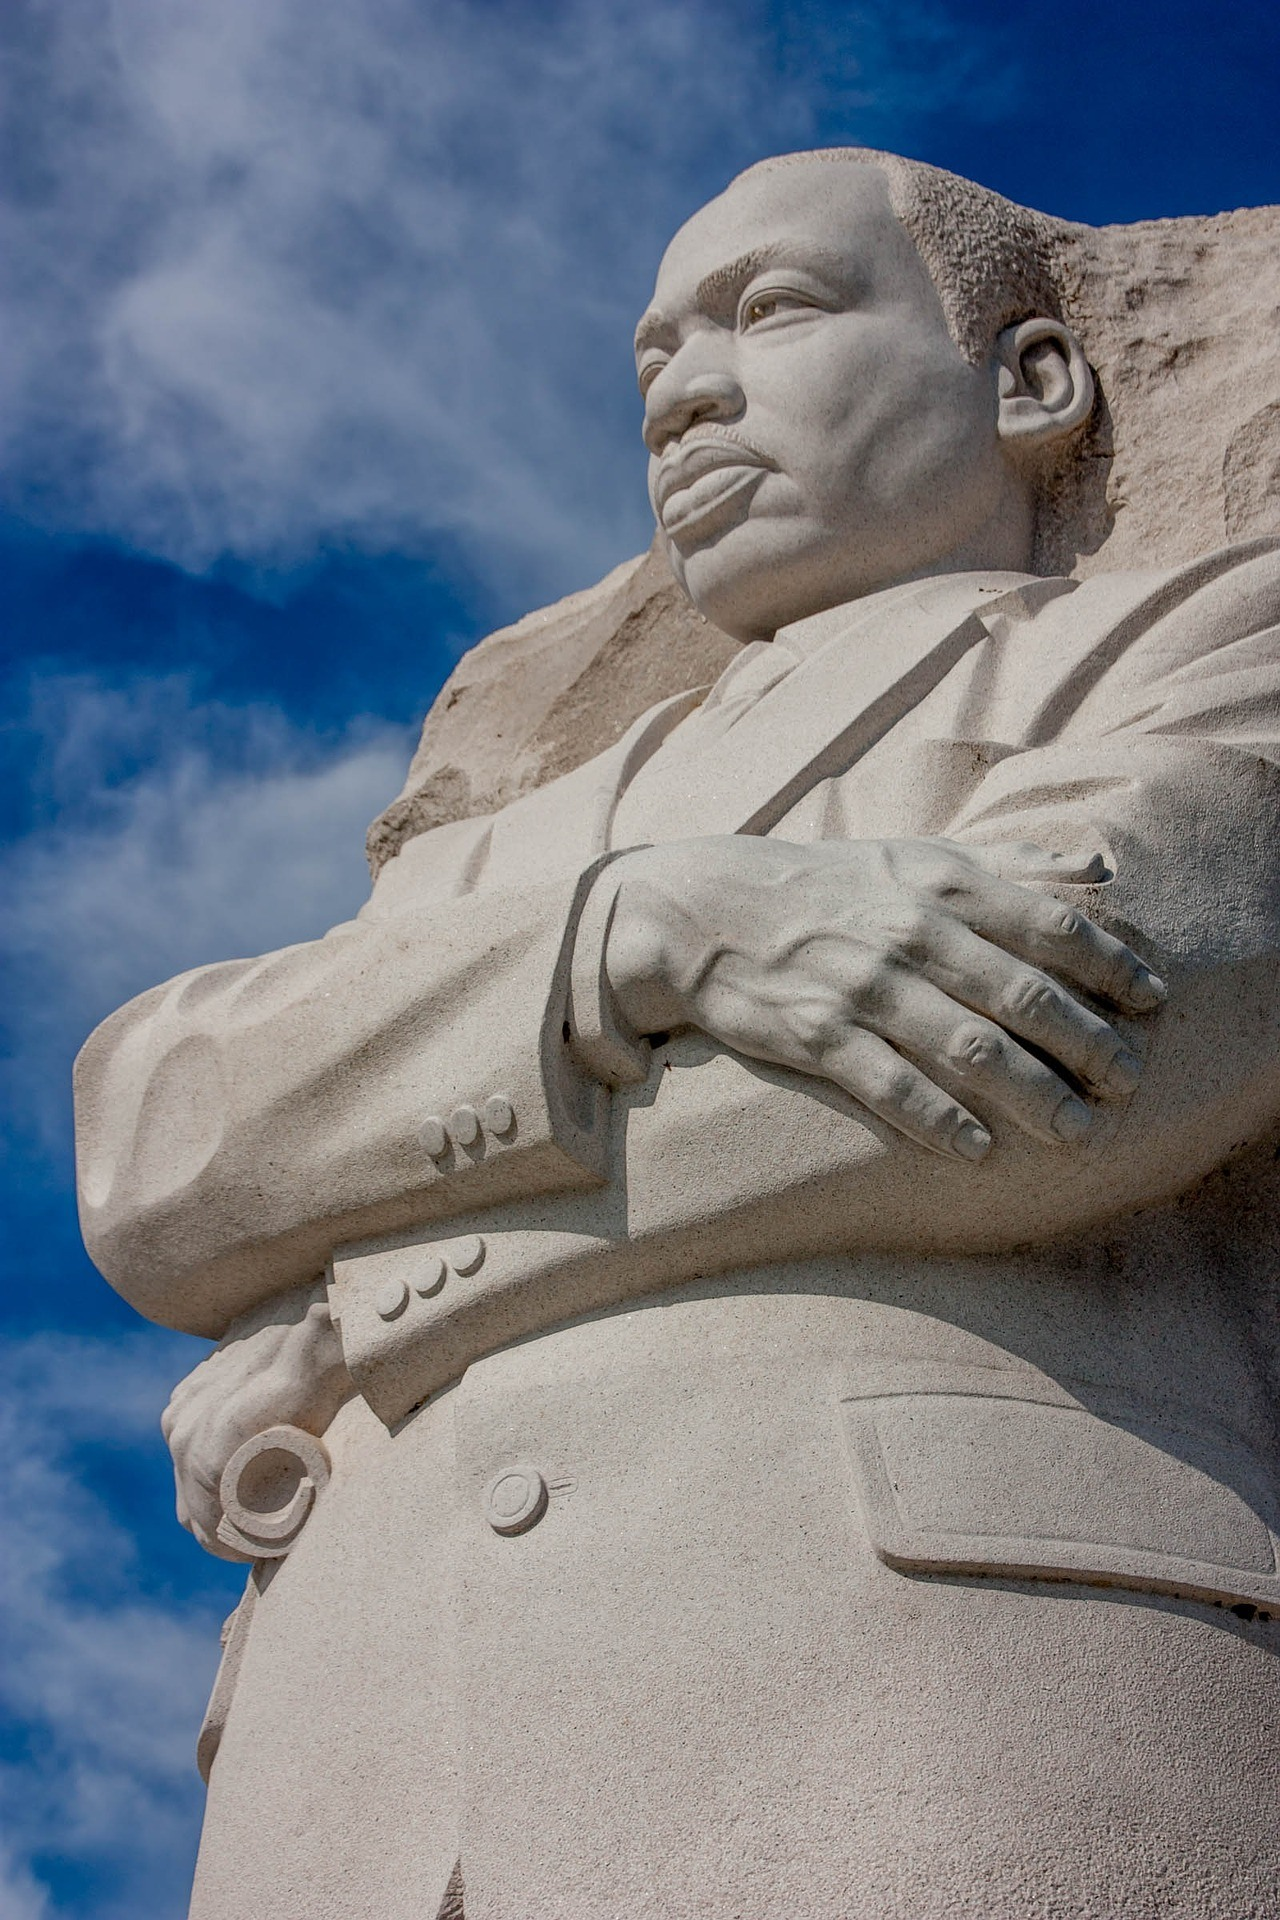 Dr. Martin Luther King, Jr. Memorial in Washington D.C.